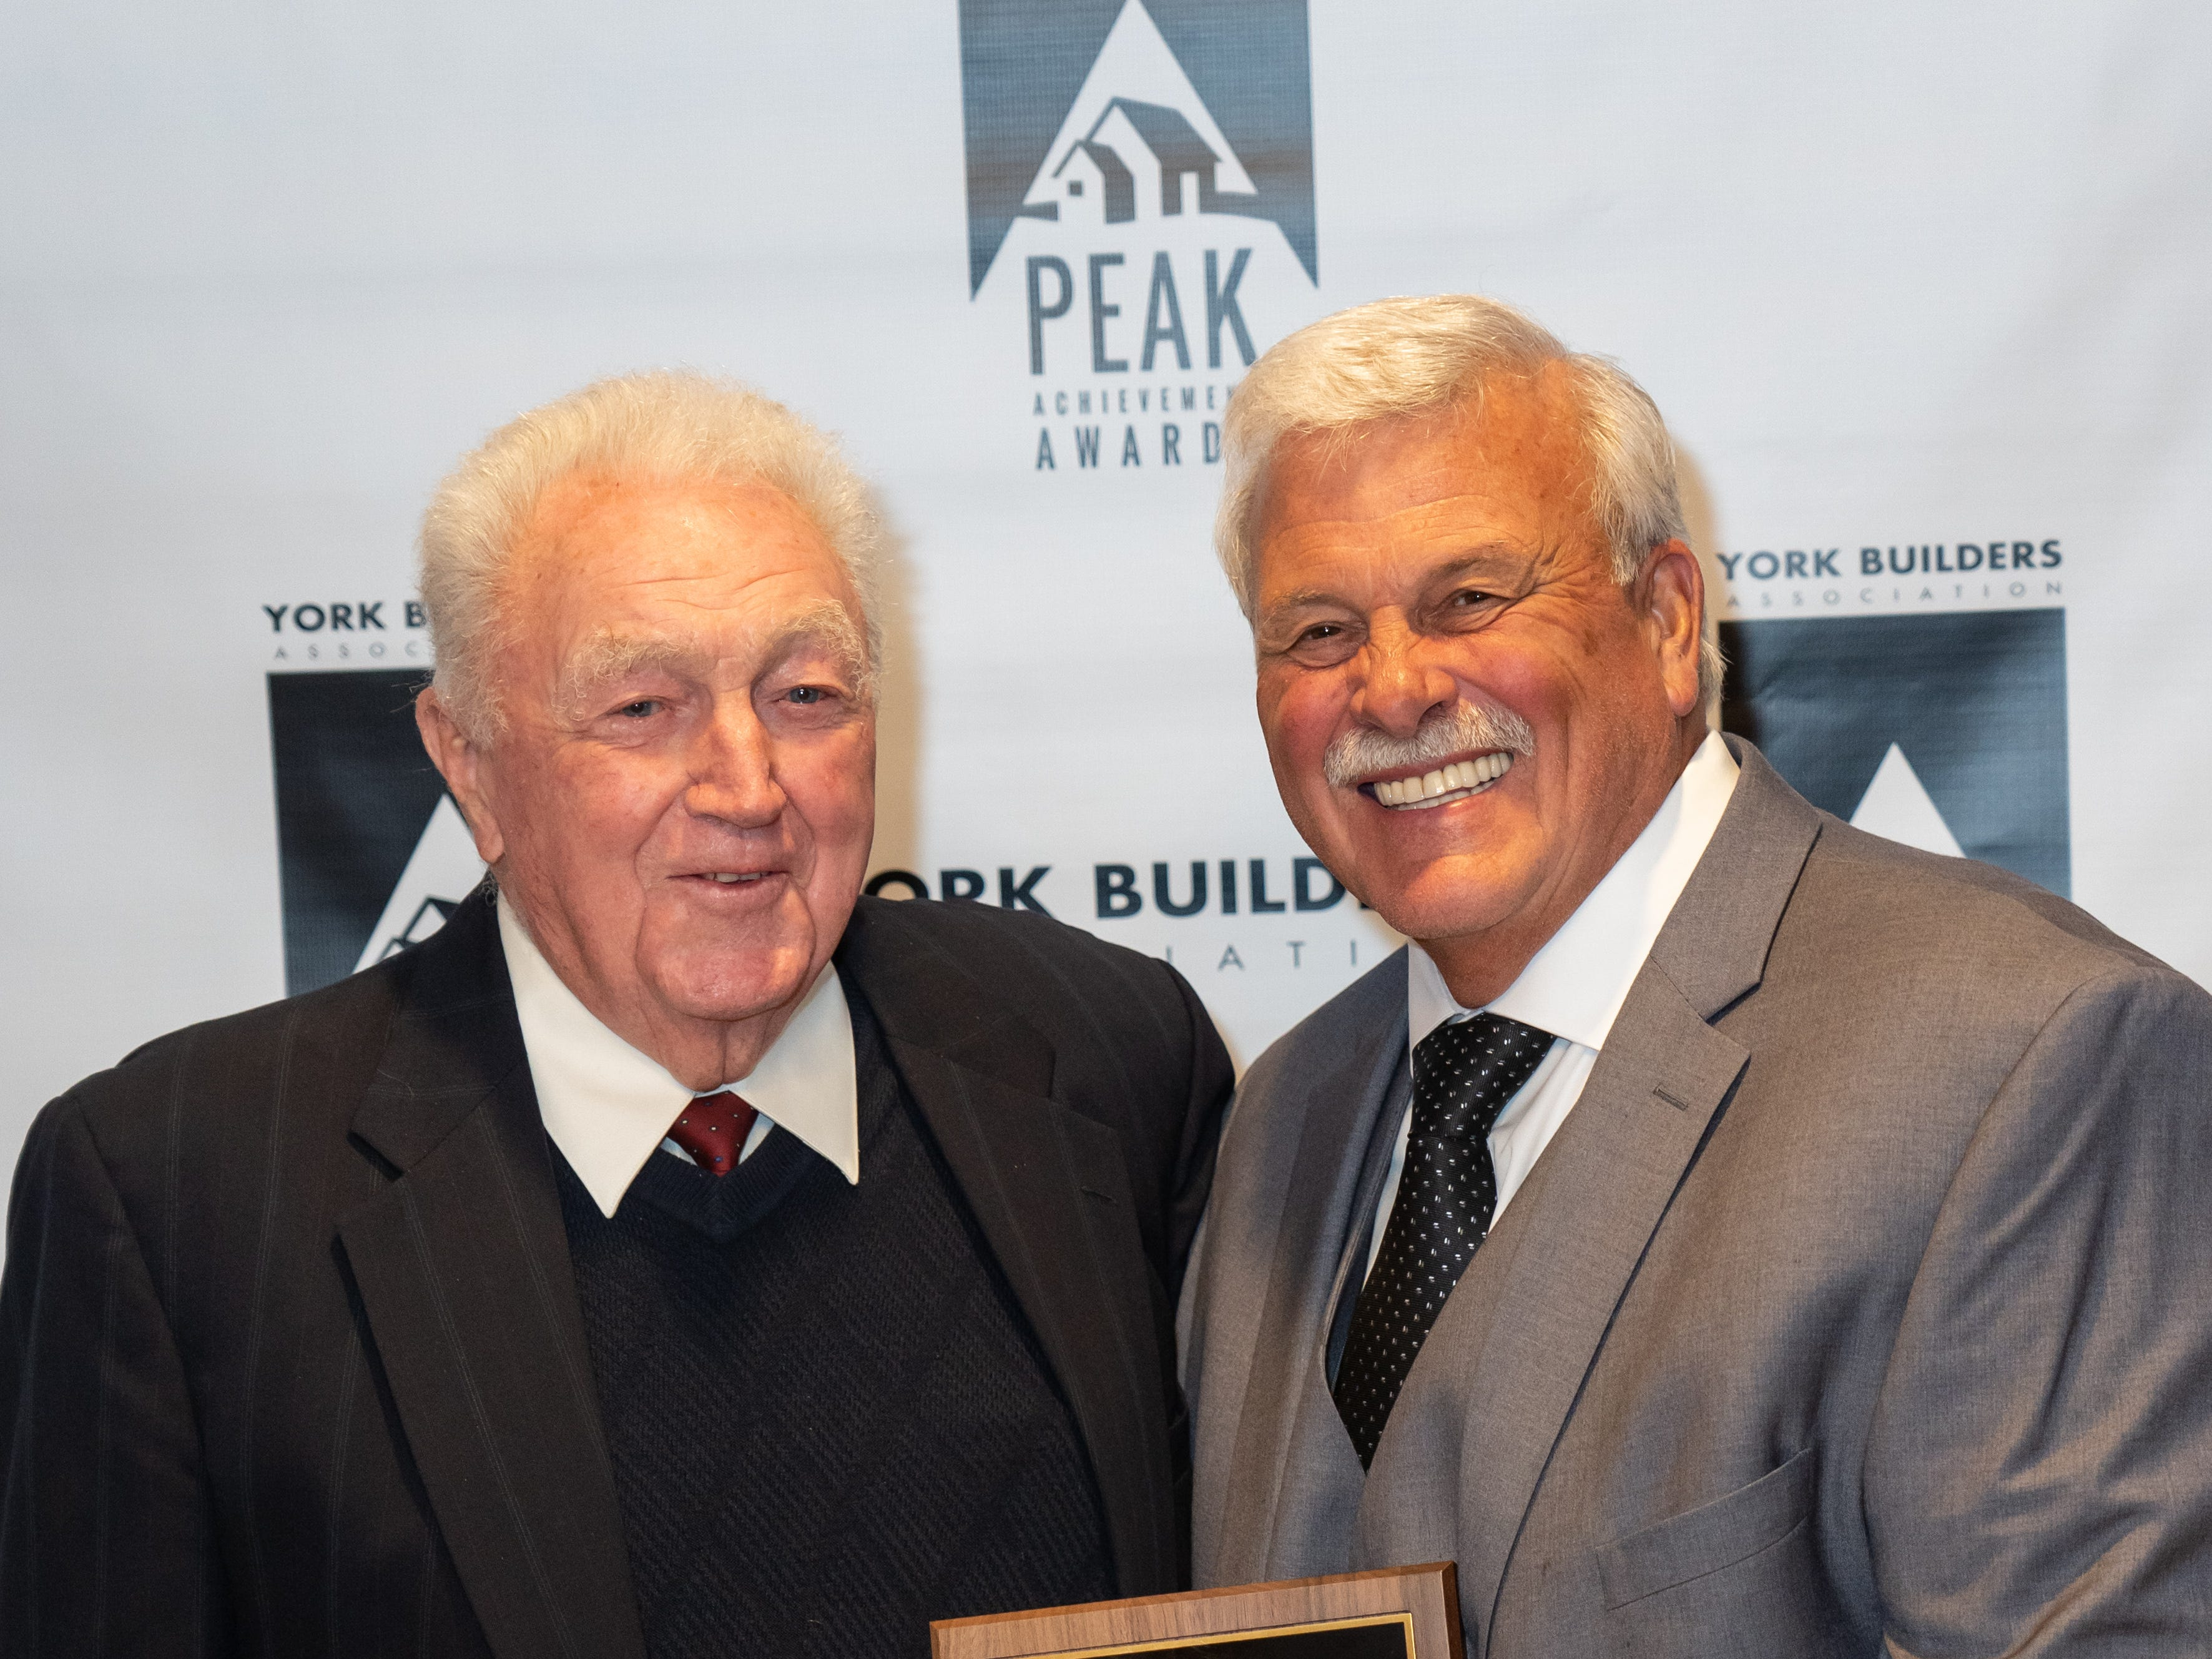 Mack Smith, left, presents Barry Strine, President of StrineÕs Heating & A/C, the 2019 Mack Smith Award from the York Builders Association (YBA). This award is part of the PEAK Achievement Awards, presented annually by YBA. The Mack Smith Award recognizes an individualÕs commitment to the goals and objectives of the Association and their contribution to the Association, the profession, and their community. submitted